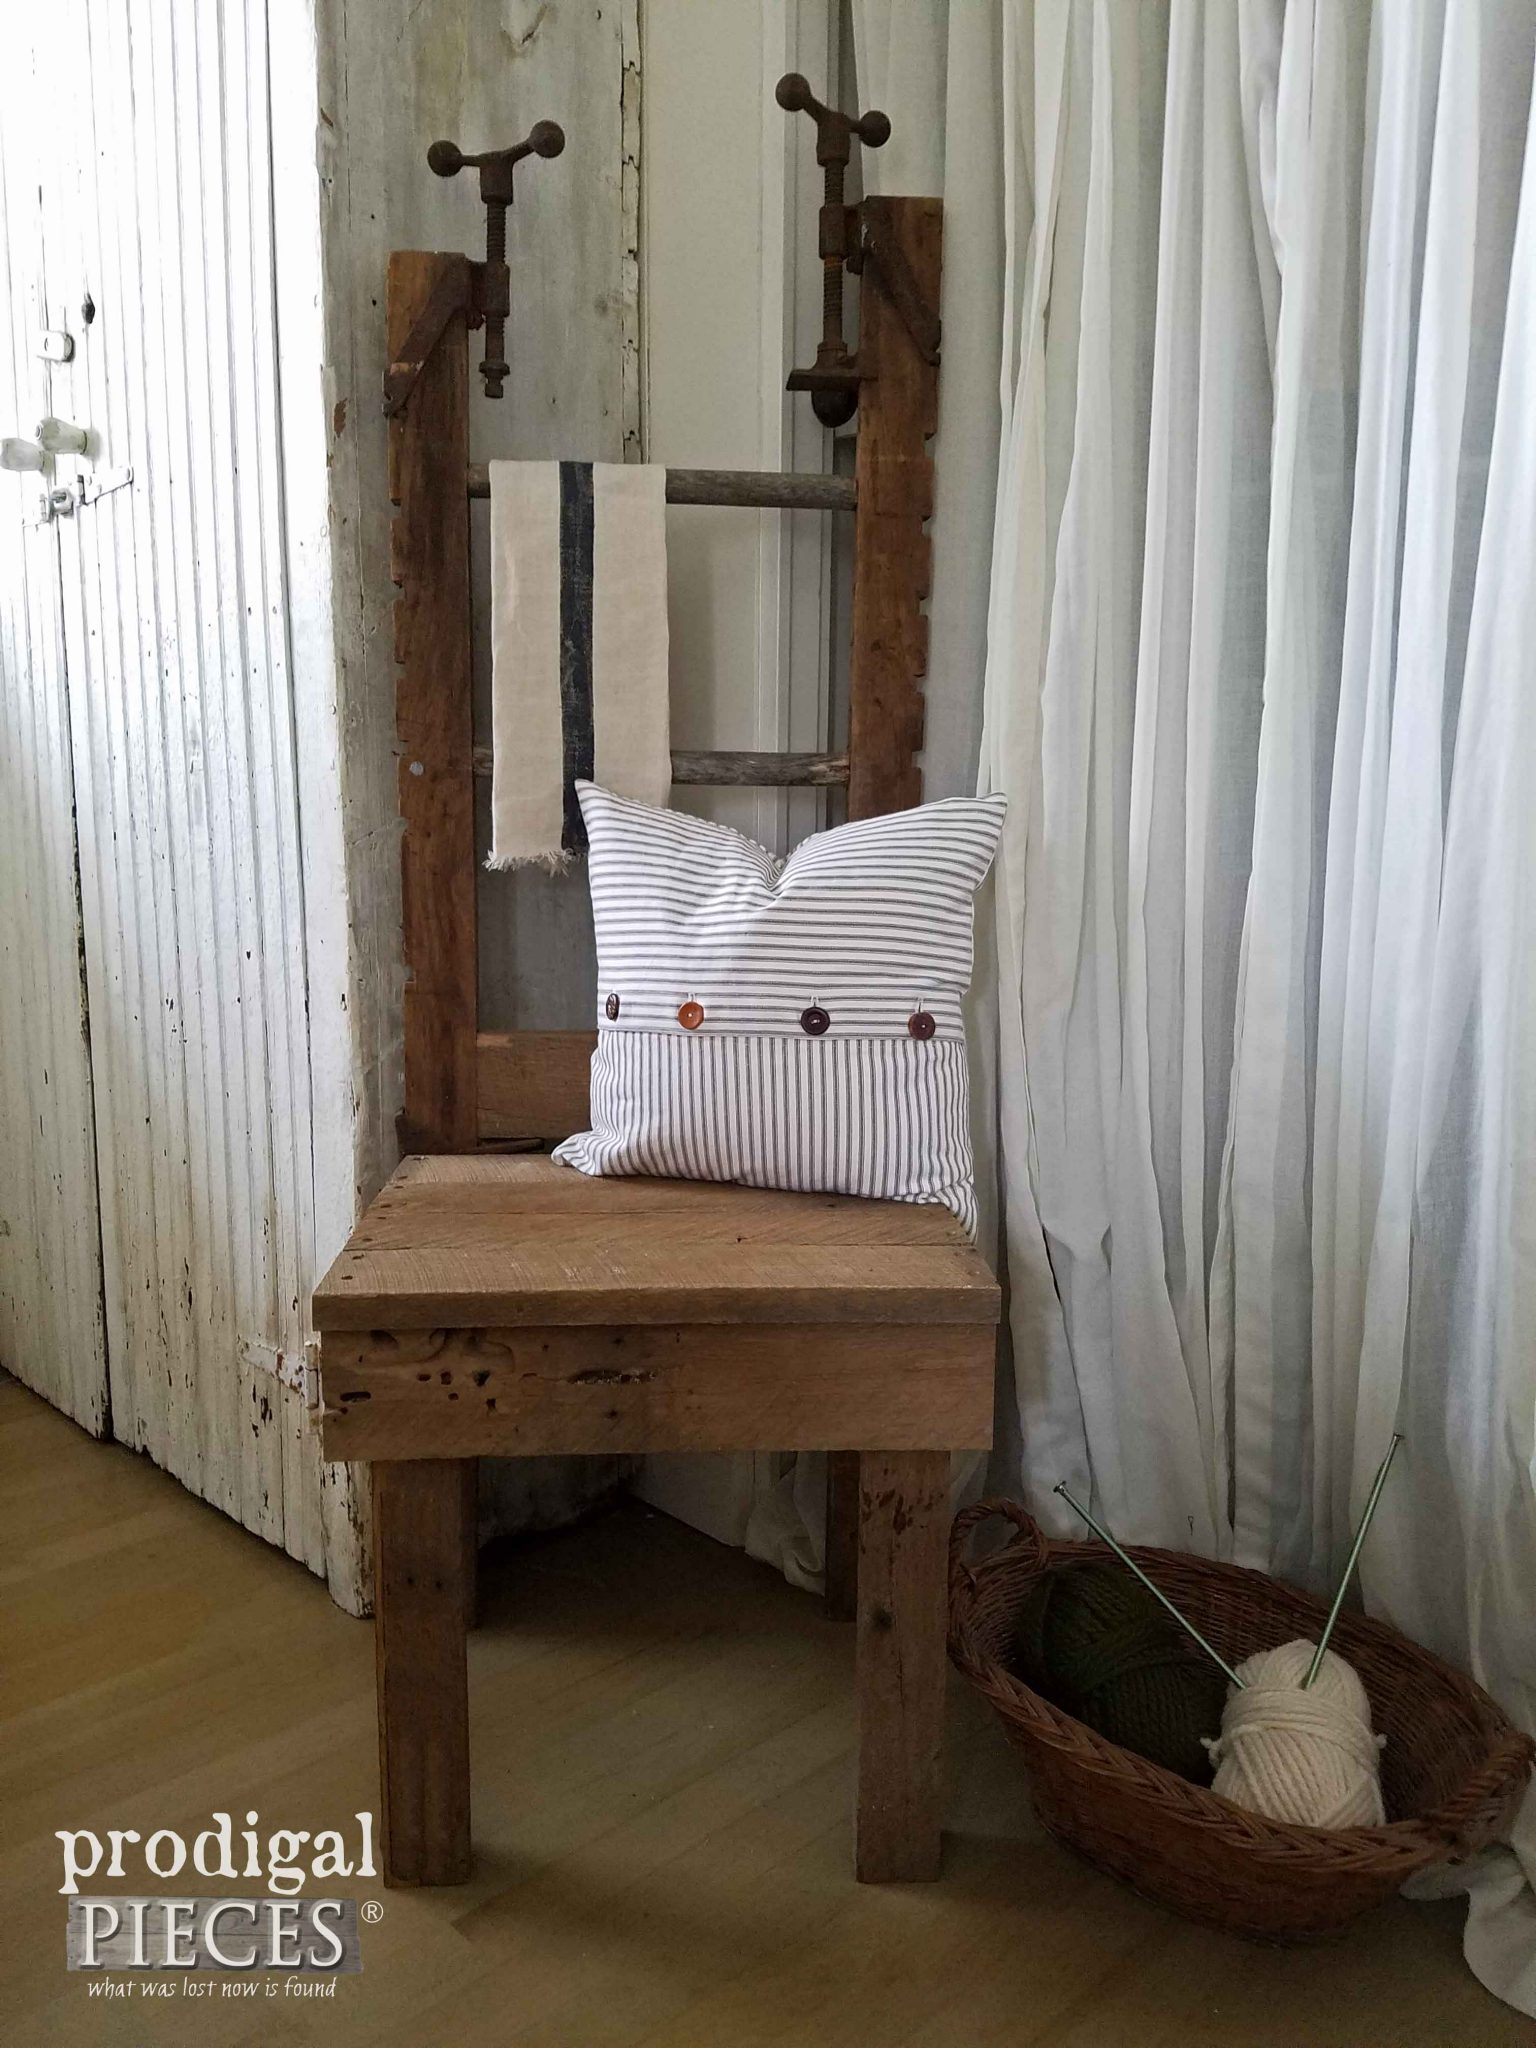 Farmhouse Style Chair Made of Repurposed Materials by Prodigal Pieces | prodigalpieces.com & Antique Clamp Chair Made with Barn Wood - Prodigal Pieces